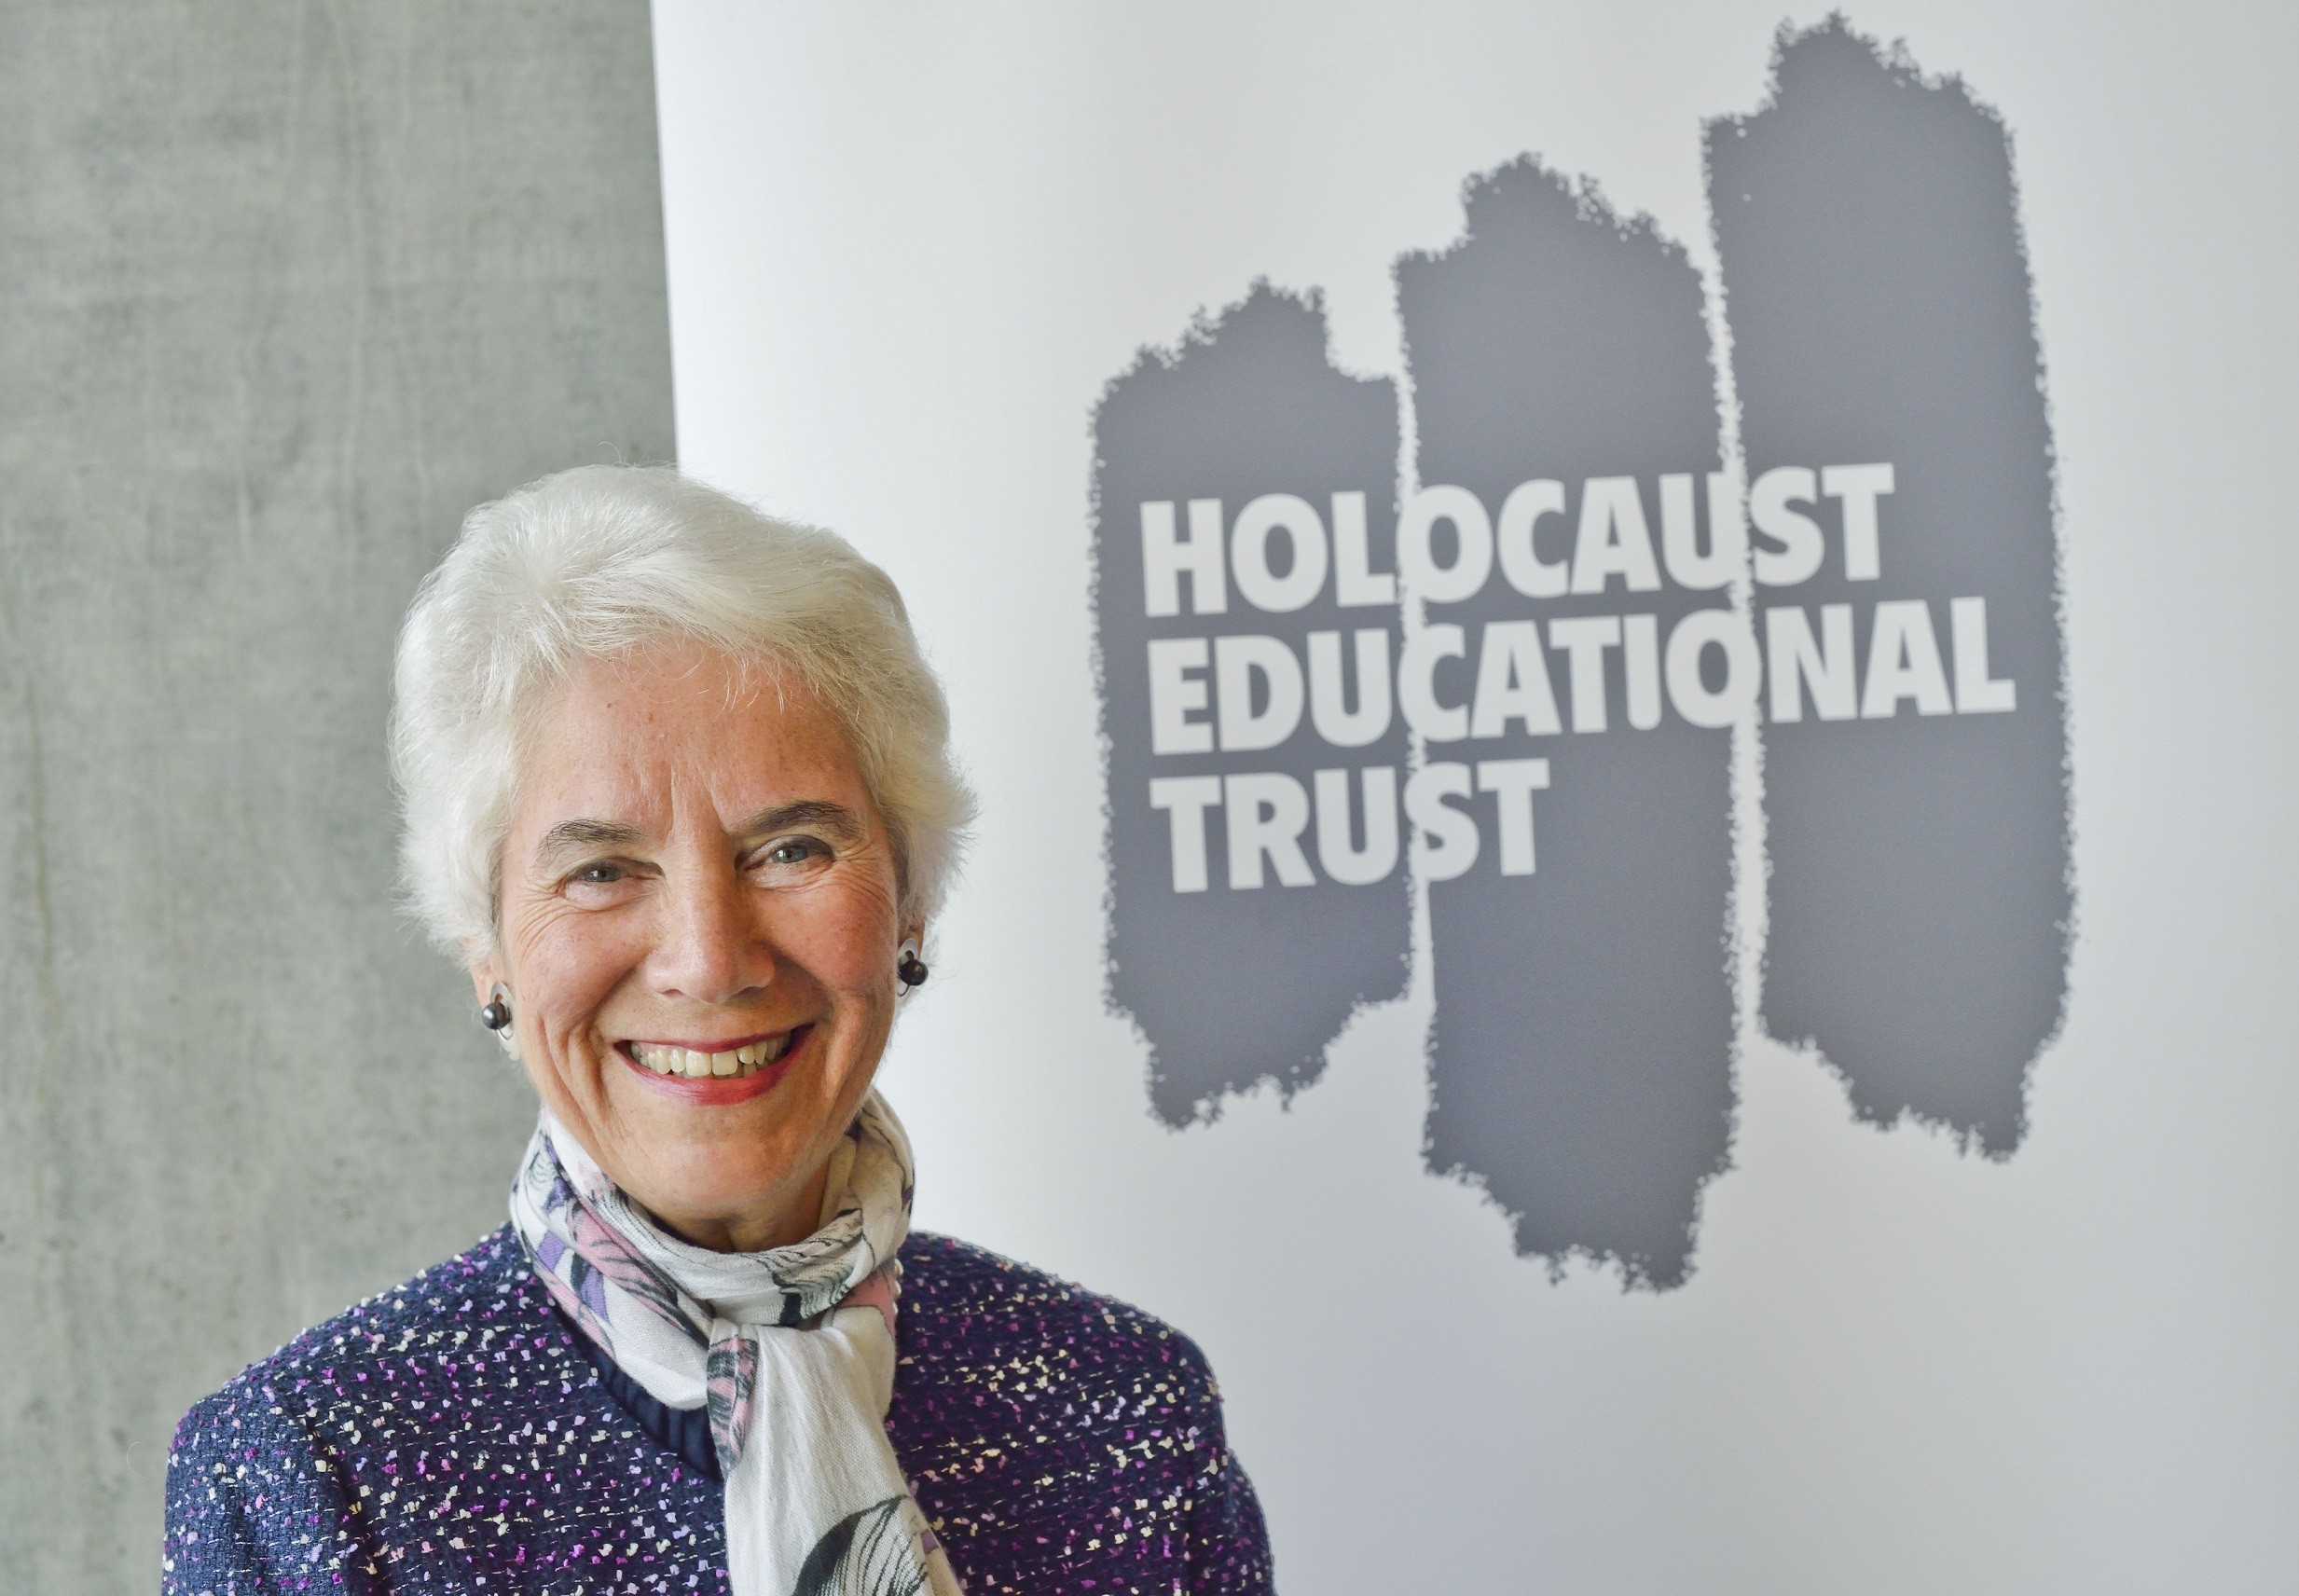 Holocaust Survivor Will Tell of Experiences at Memorial Event